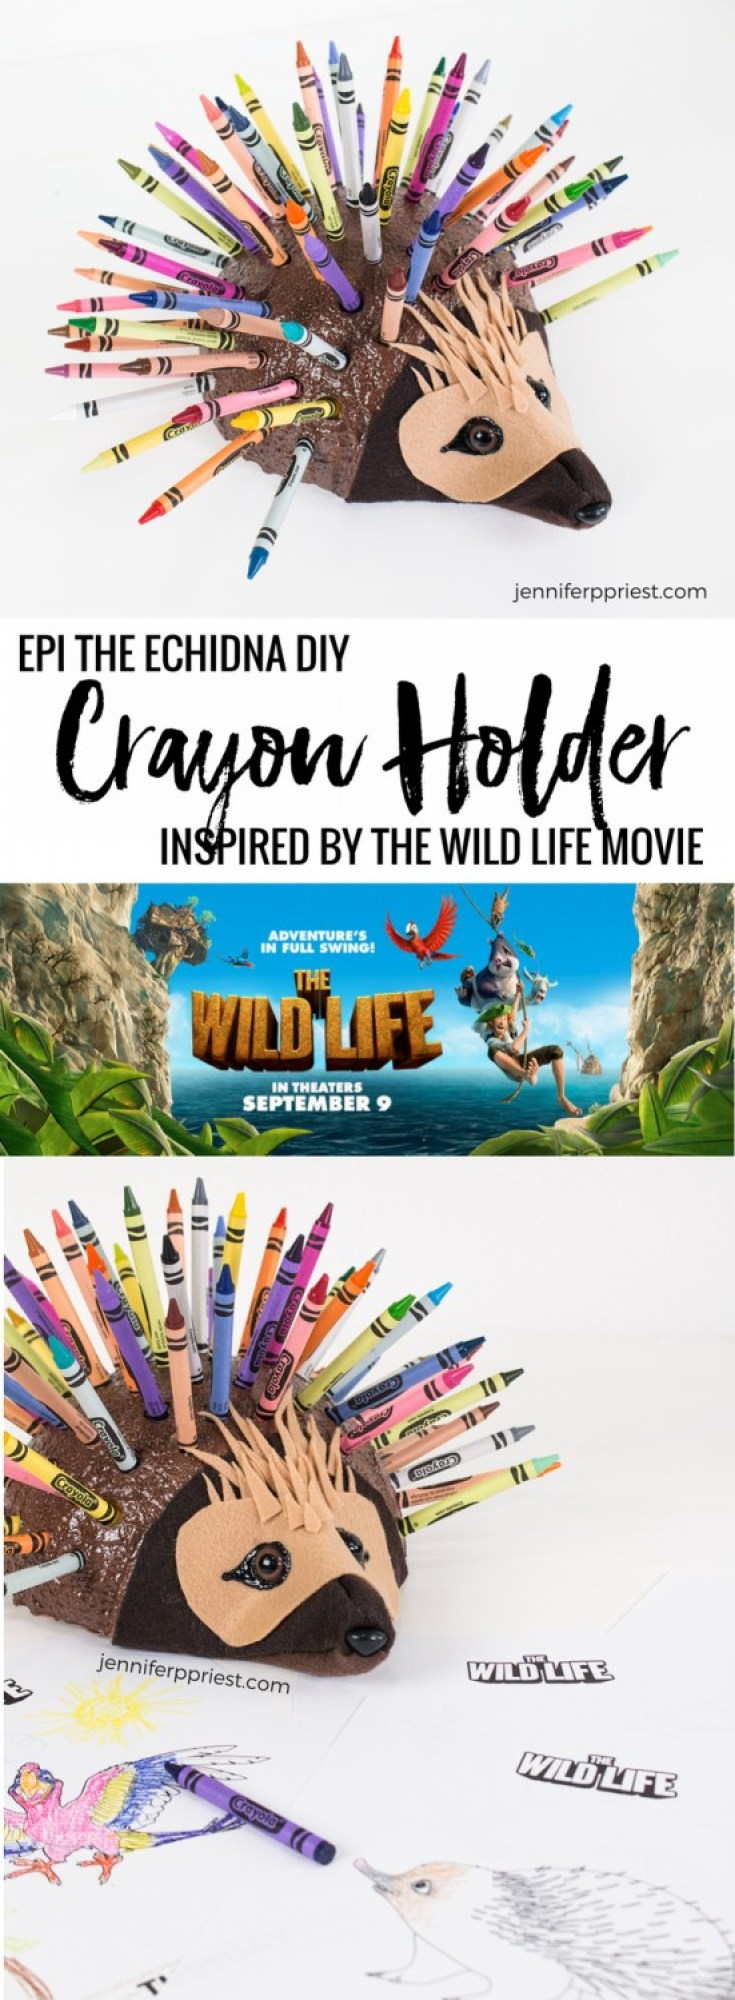 Color on the wild side with this DIY crayon holder inspired by The Wild Life in theaters Sept 9. Are your kids super excited to see this movie? My son is!! We love the variety of characters in the movie, like Epi the echidna. We created this DIY crayon holder kids craft for coloring books, inspired by her character in the film. Get the how-to for this project and learn more about The Wild Life movie here: http://justjp.co/TheWildLifeMovie #TheWildLife [AD]